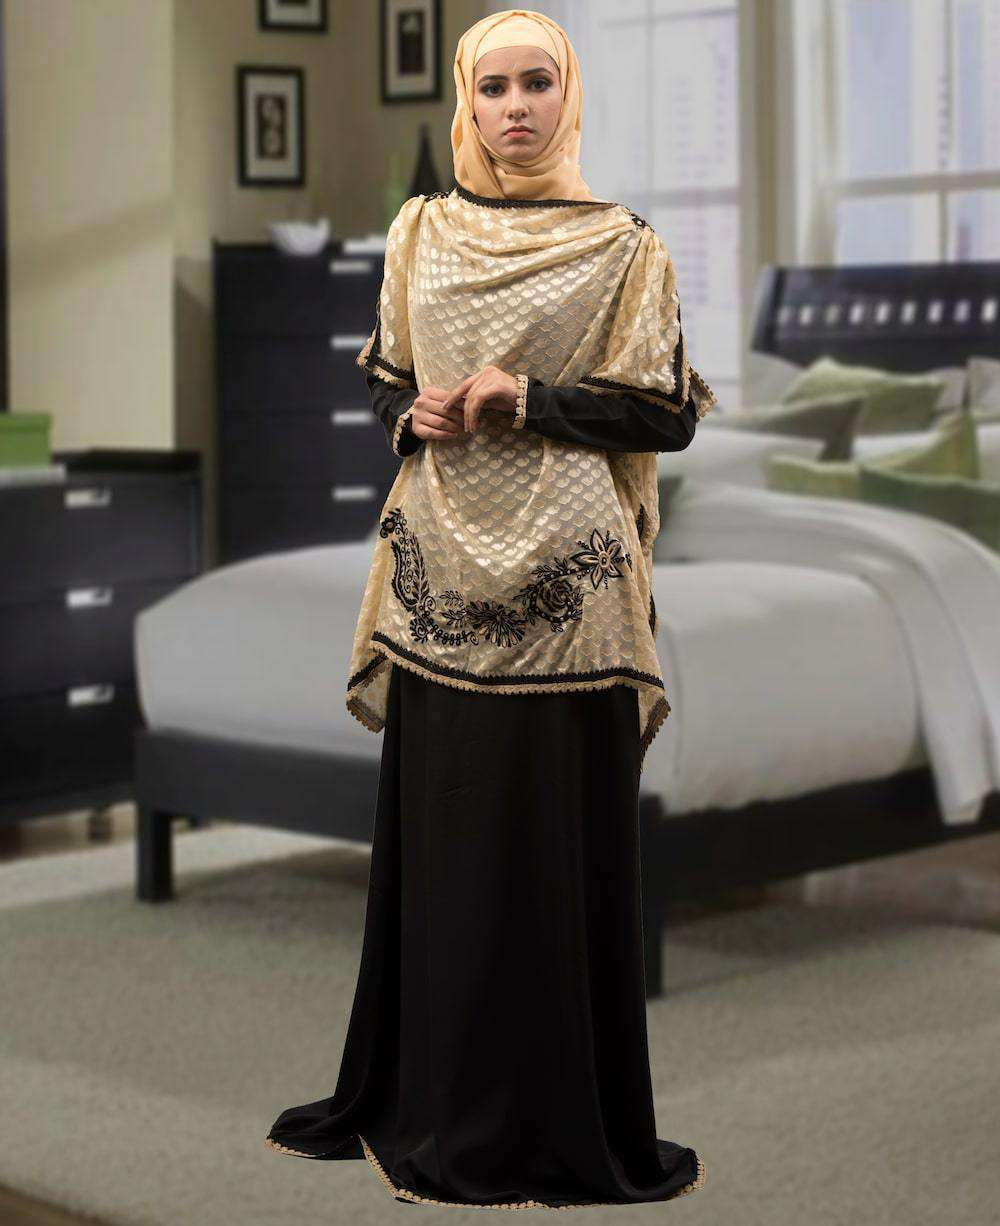 Black and Beige Embroidered Islamic Dress MYPF1306